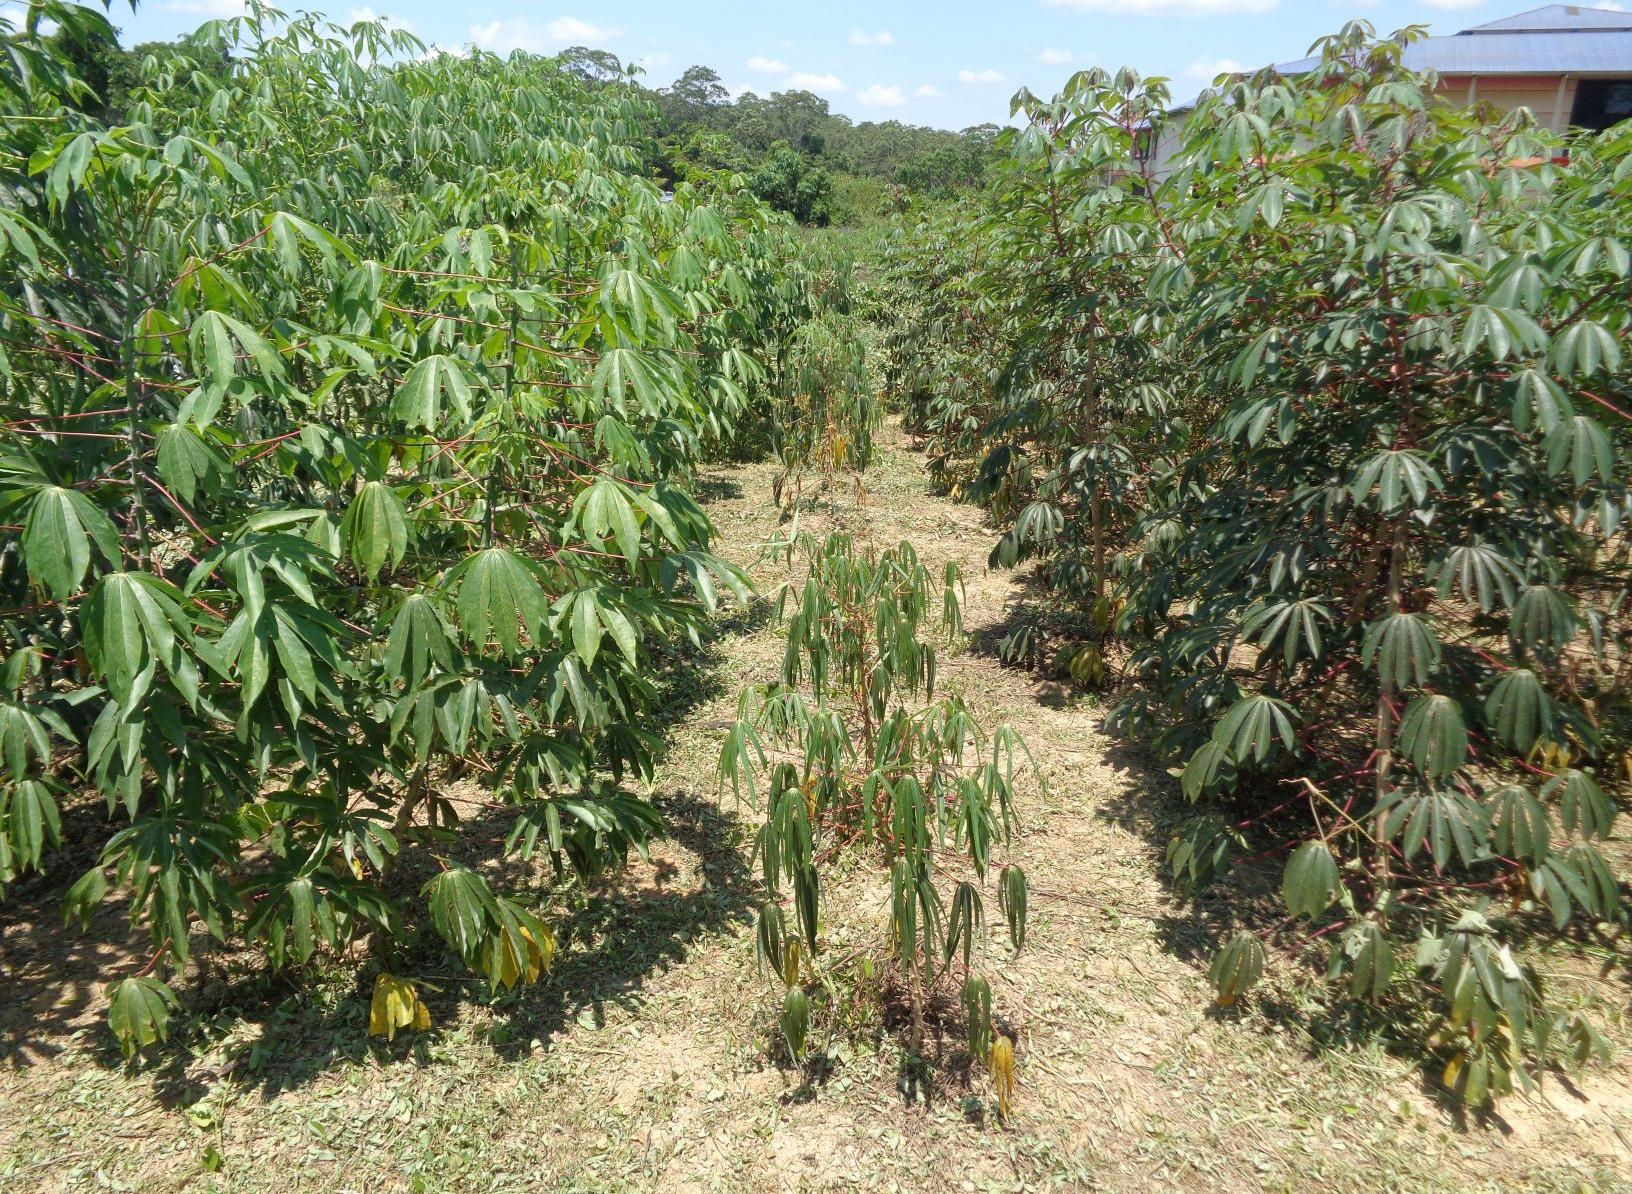 Plants de manioc (Photo: Hervé Vanderschuren)